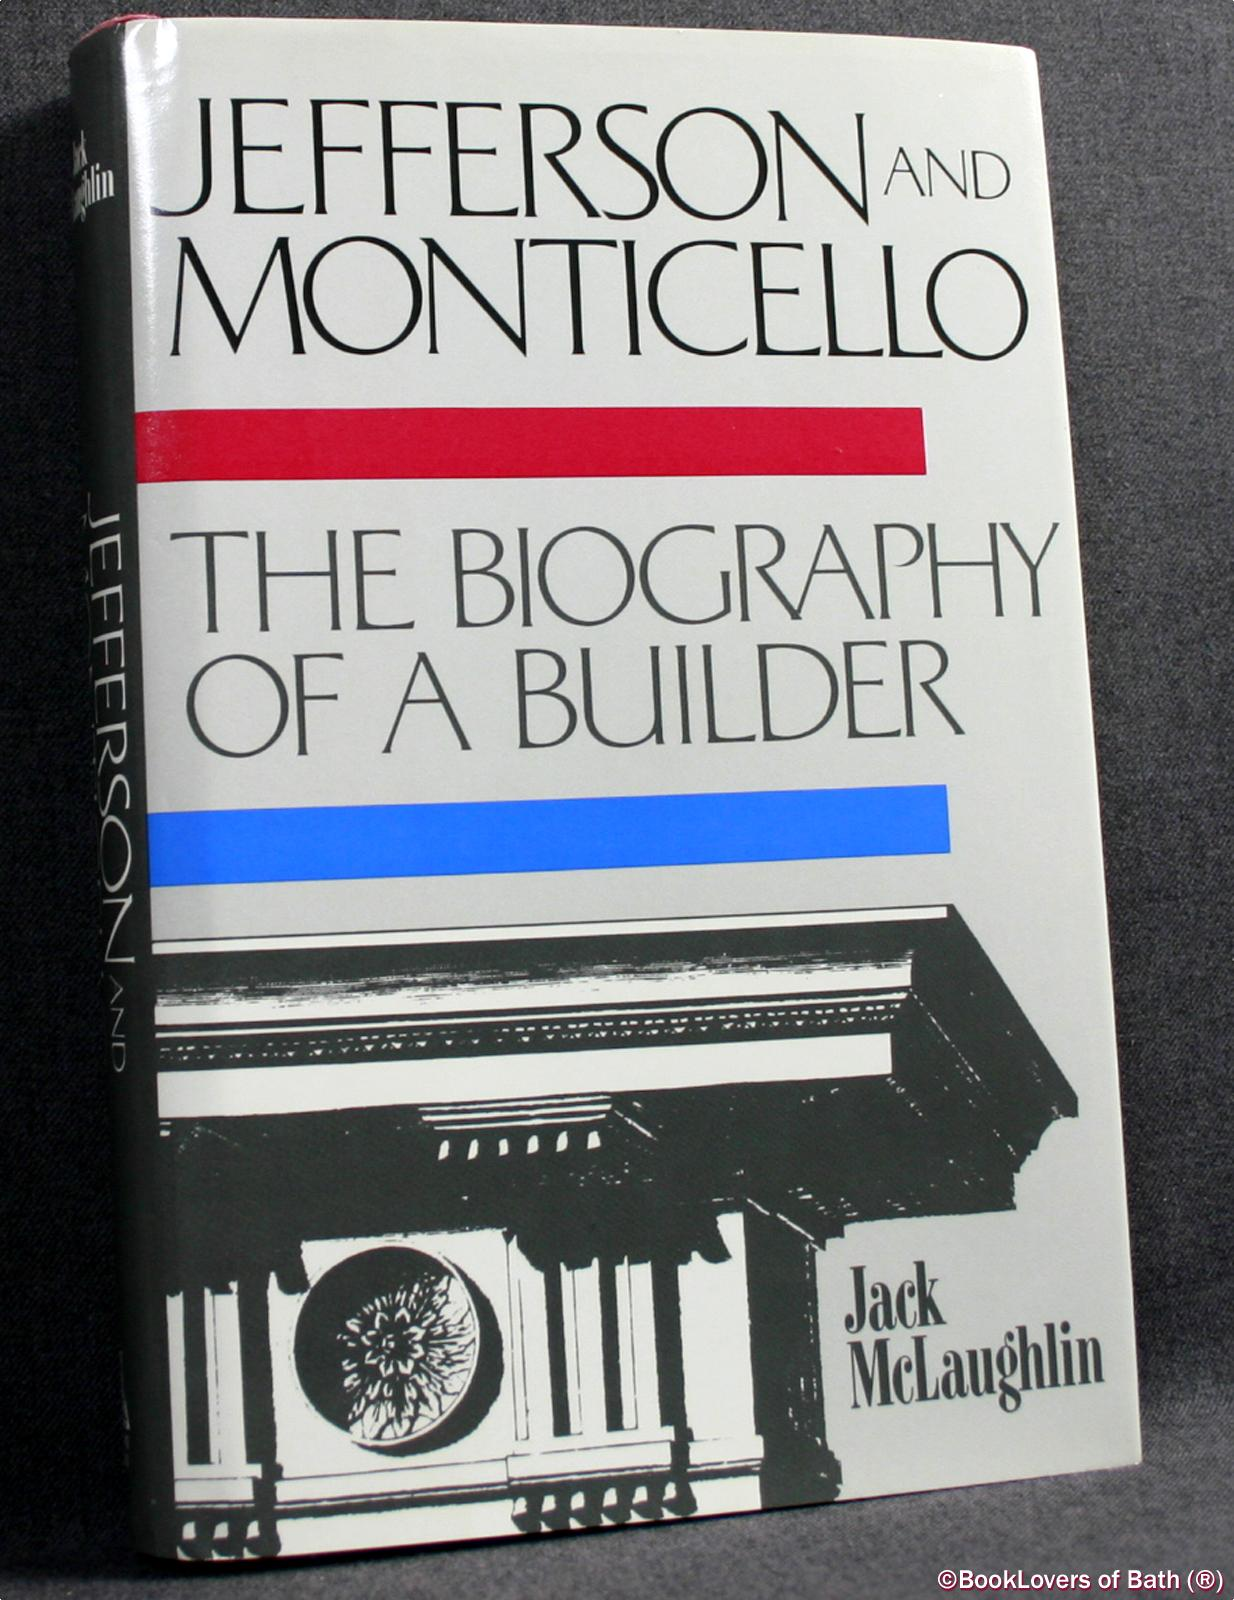 Jefferson and Monticello: The Biography of a Builder - Jack McLaughlin